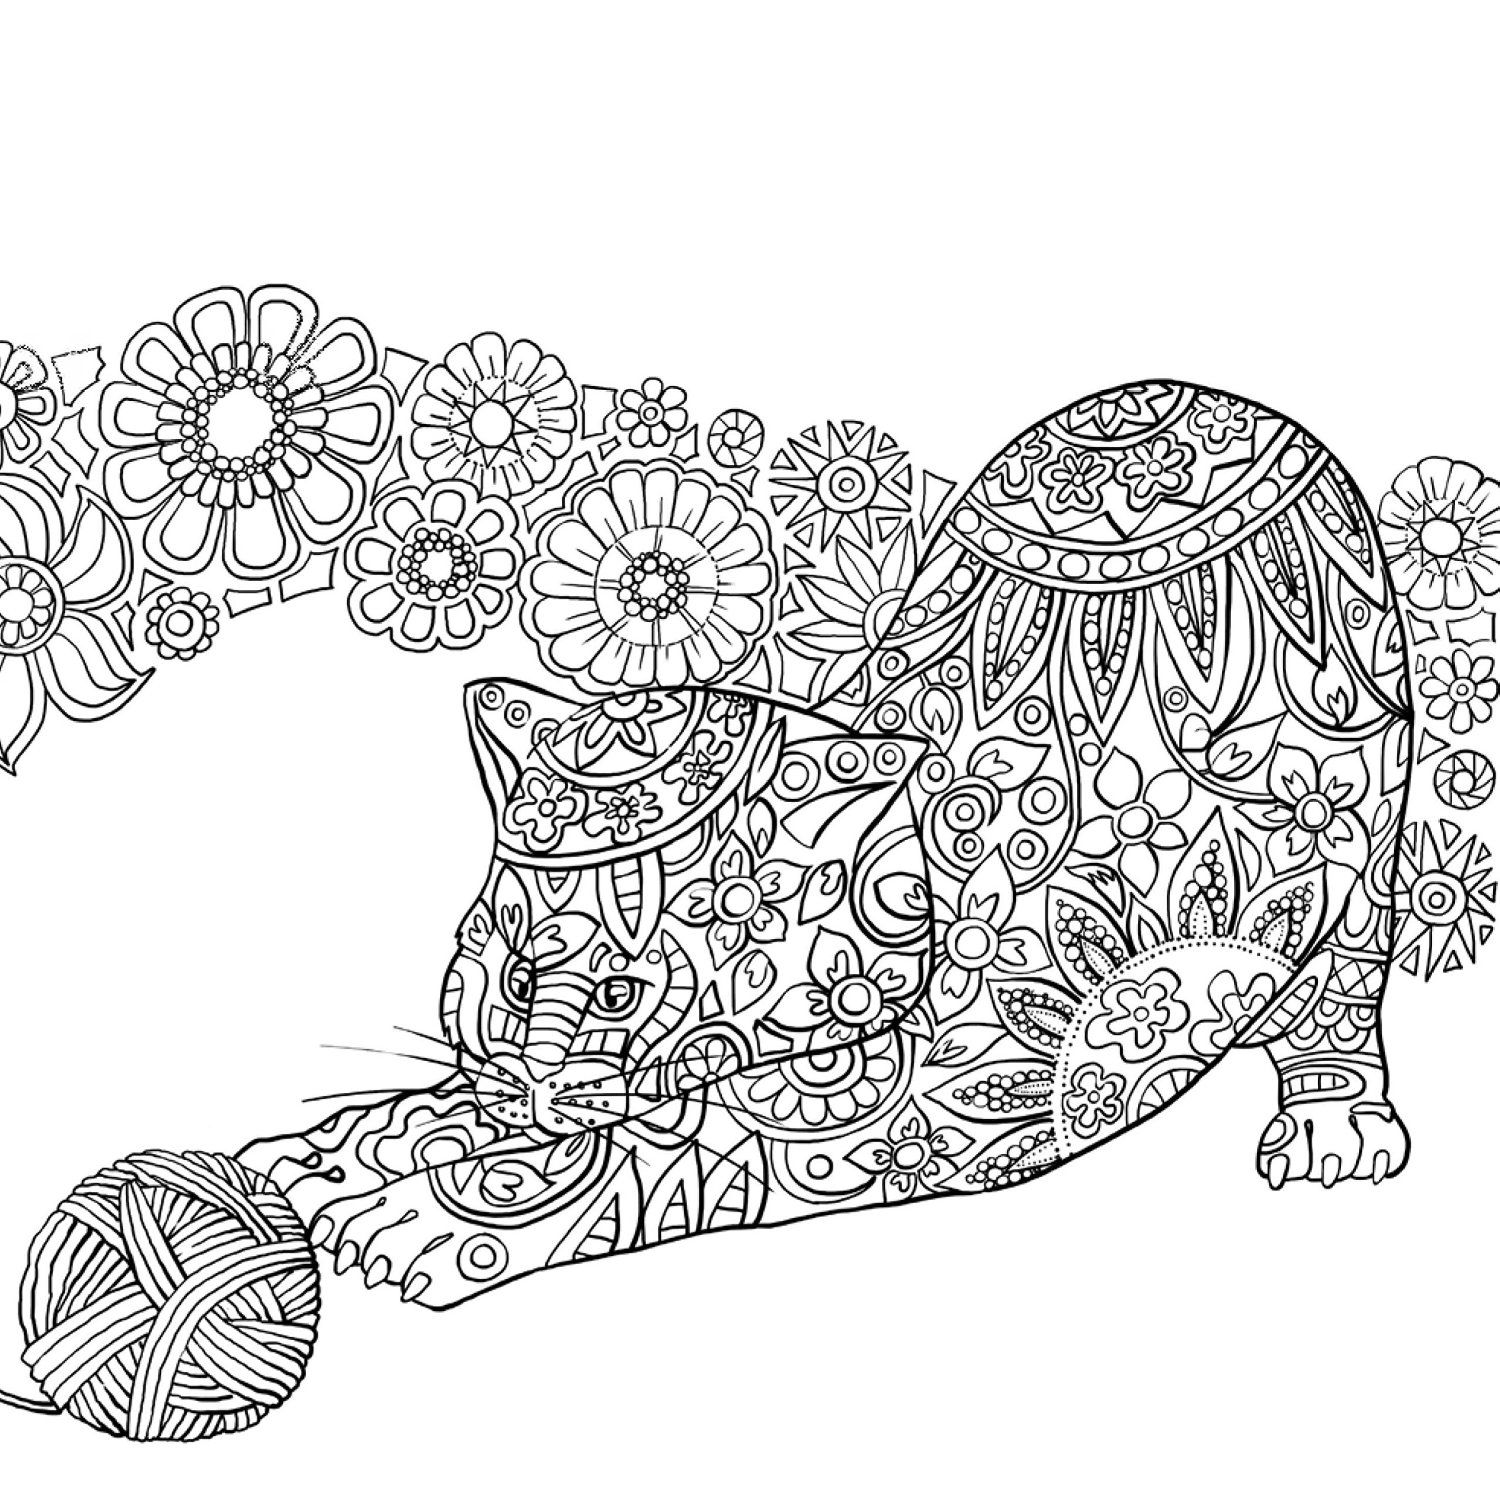 Free coloring page coloring adult difficult cat from back Fun